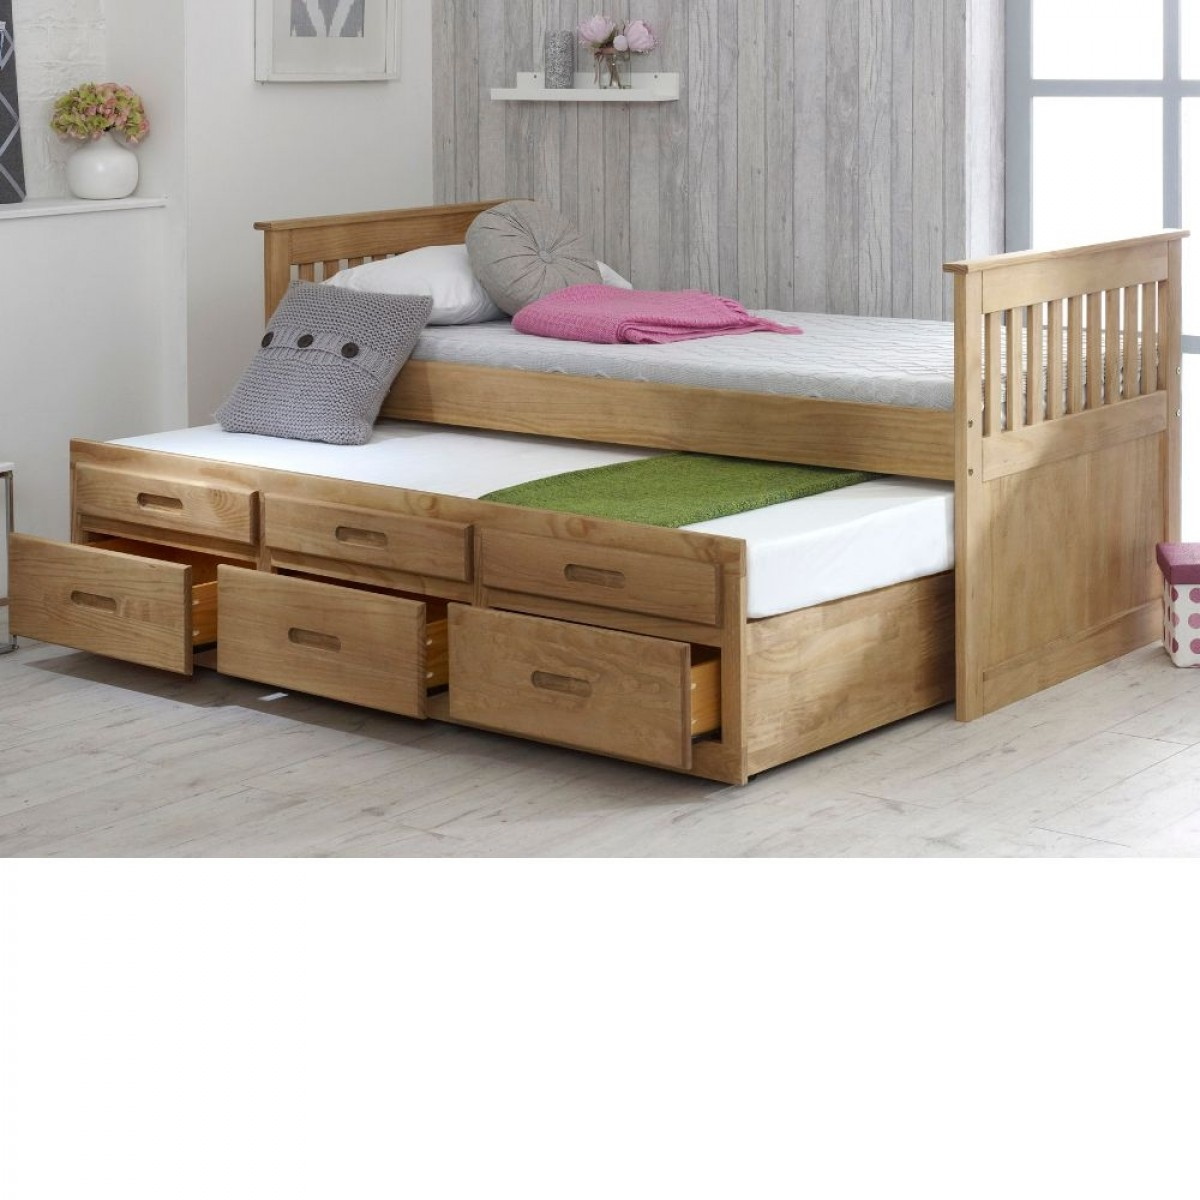 Captains Waxed Pine Wooden Guest Bed